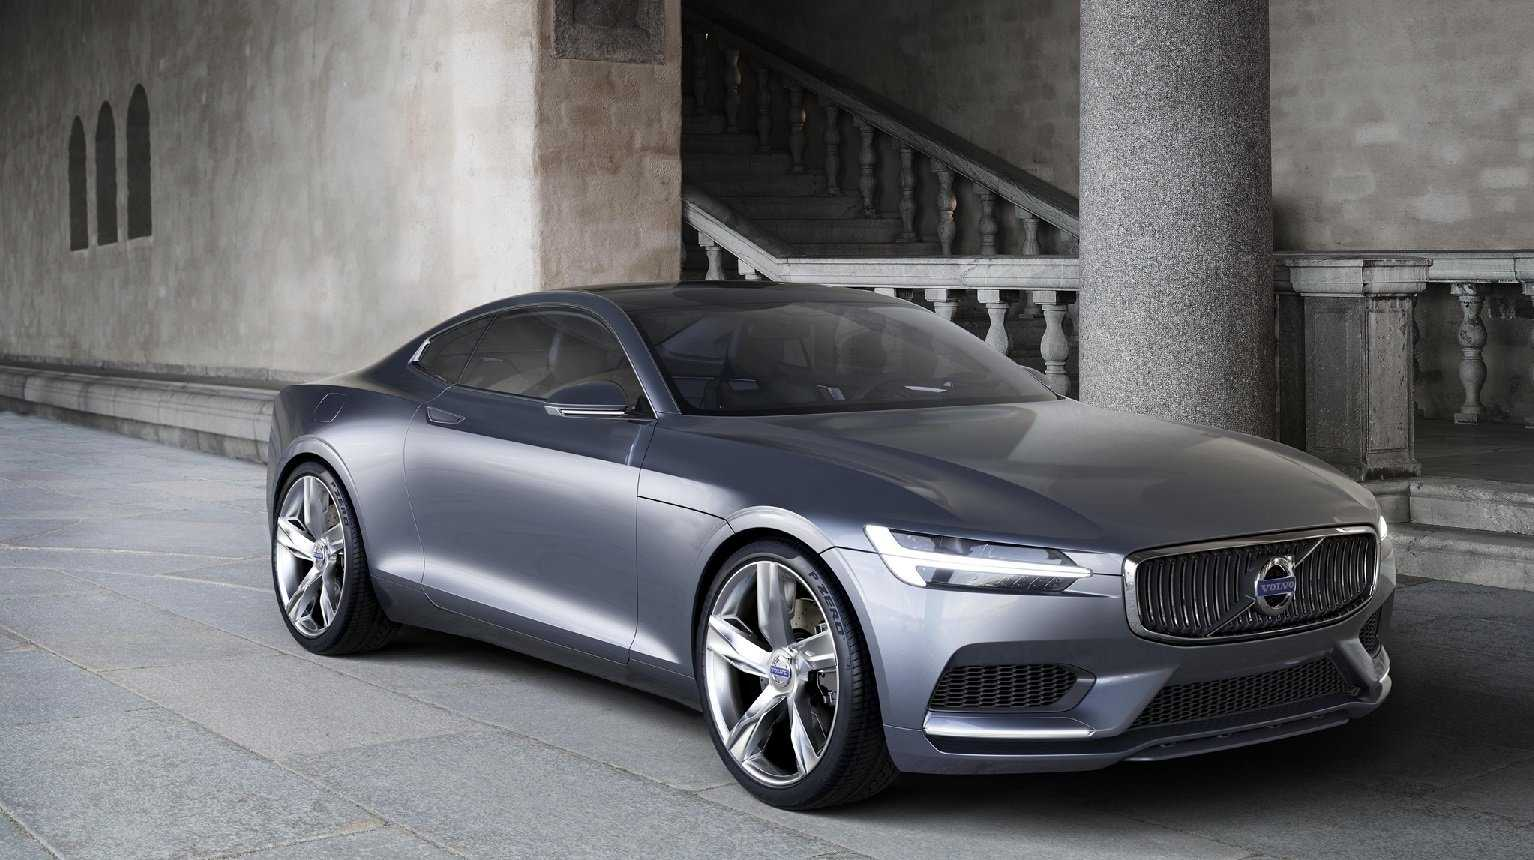 Volvo S90 for Detroit Debut in January 2017: Set to Take on Mercedes E Class and BMW 5 Series